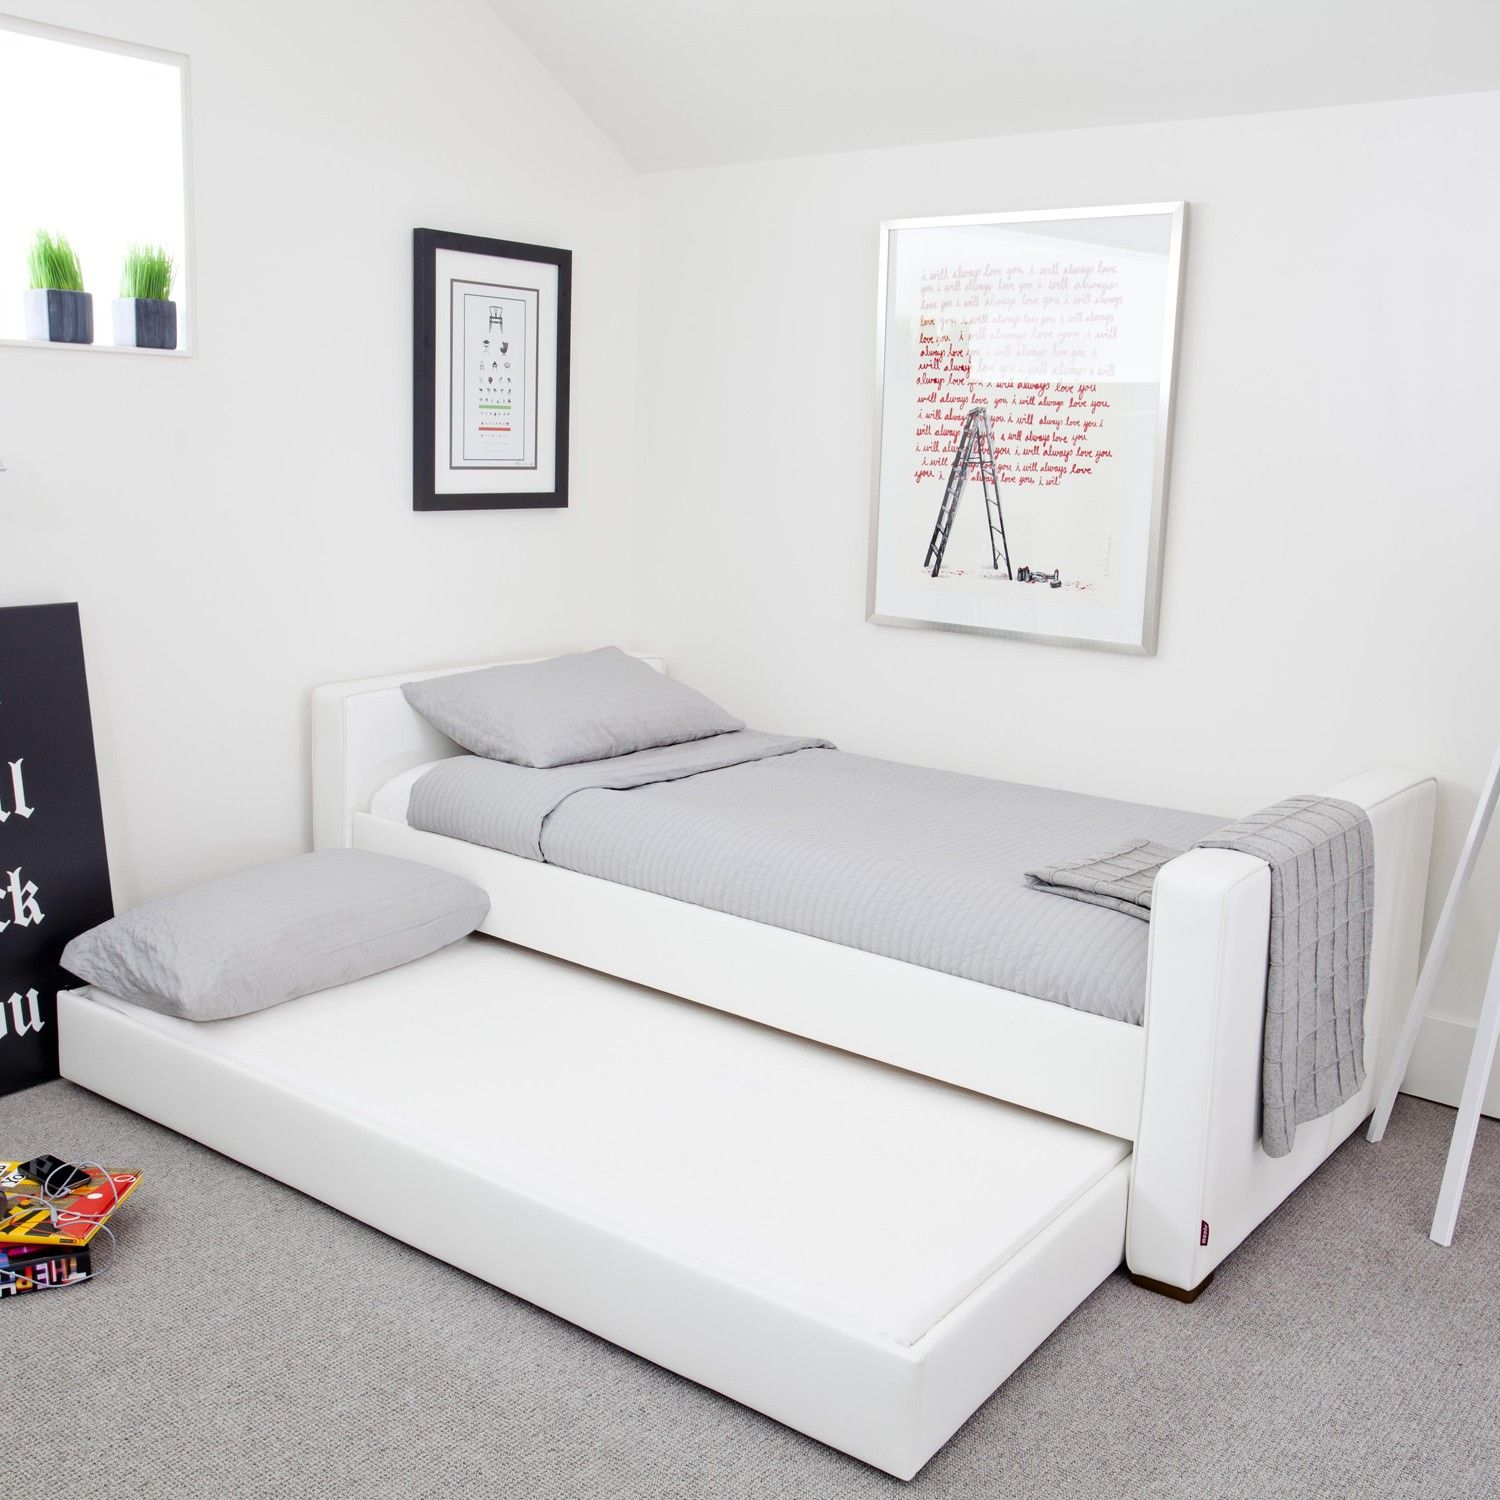 Design Ideas for Your Studio Apartment ...hgtv.com